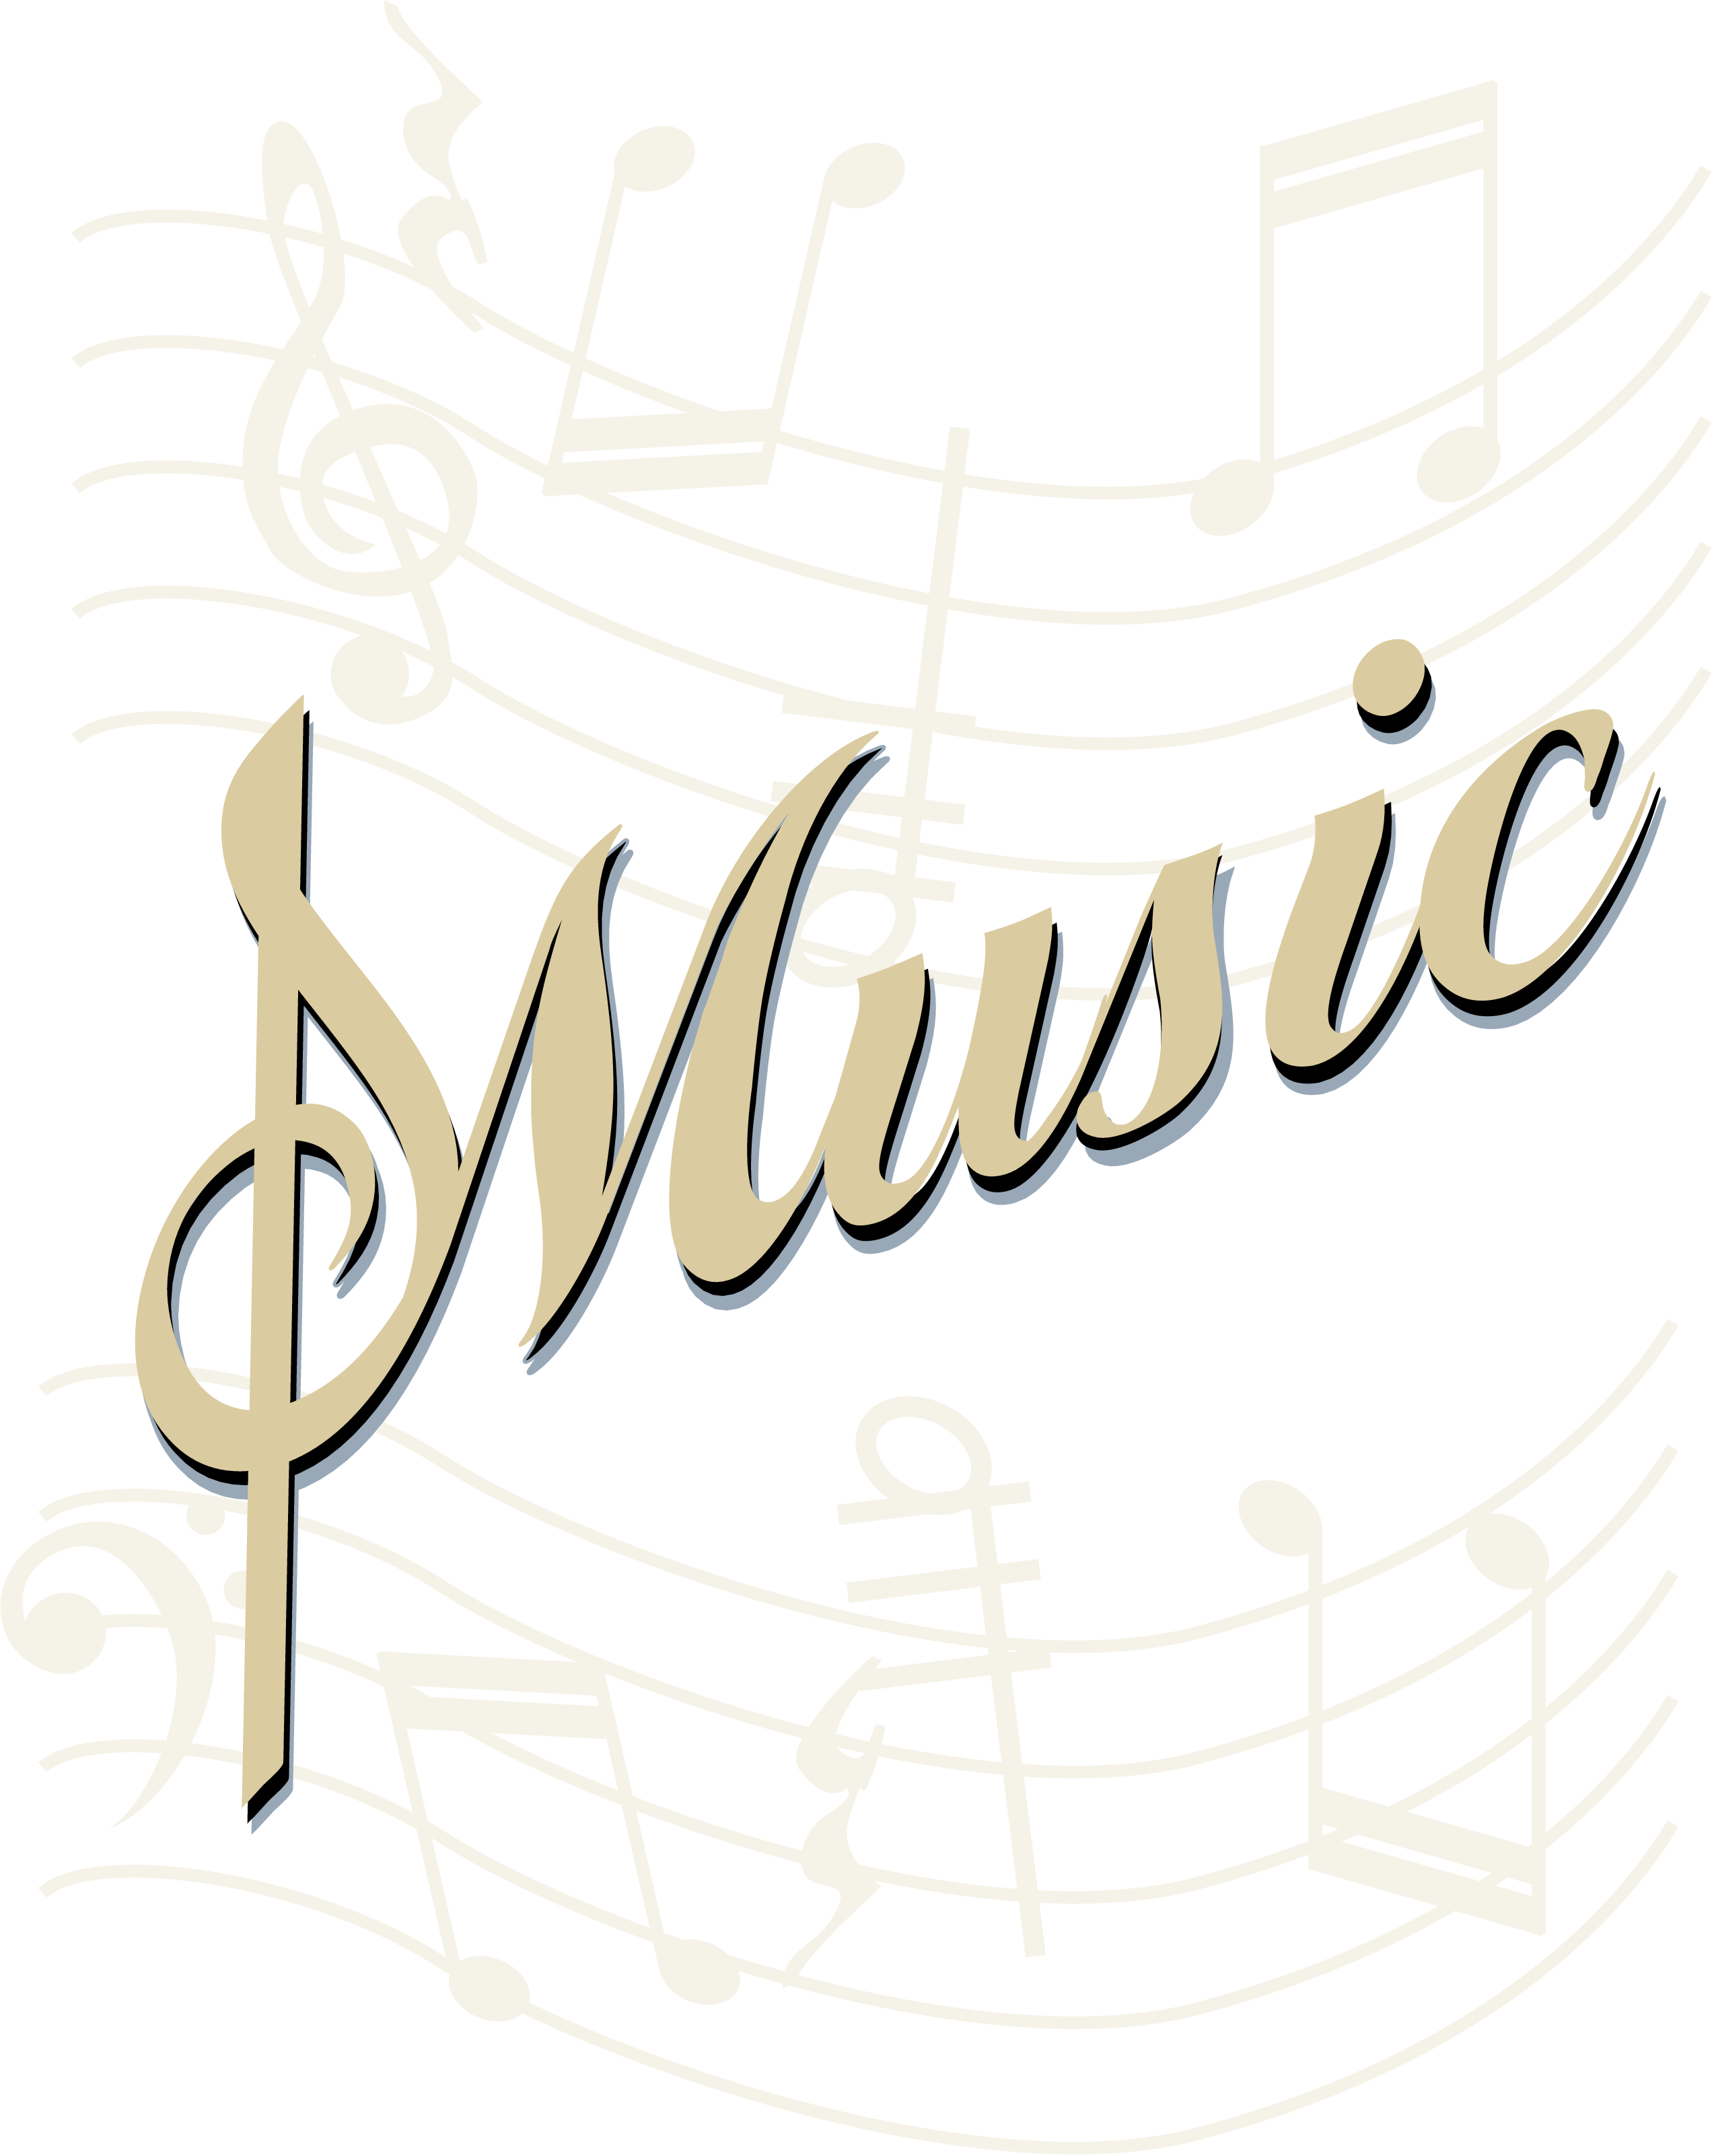 free online music clipart - photo #32